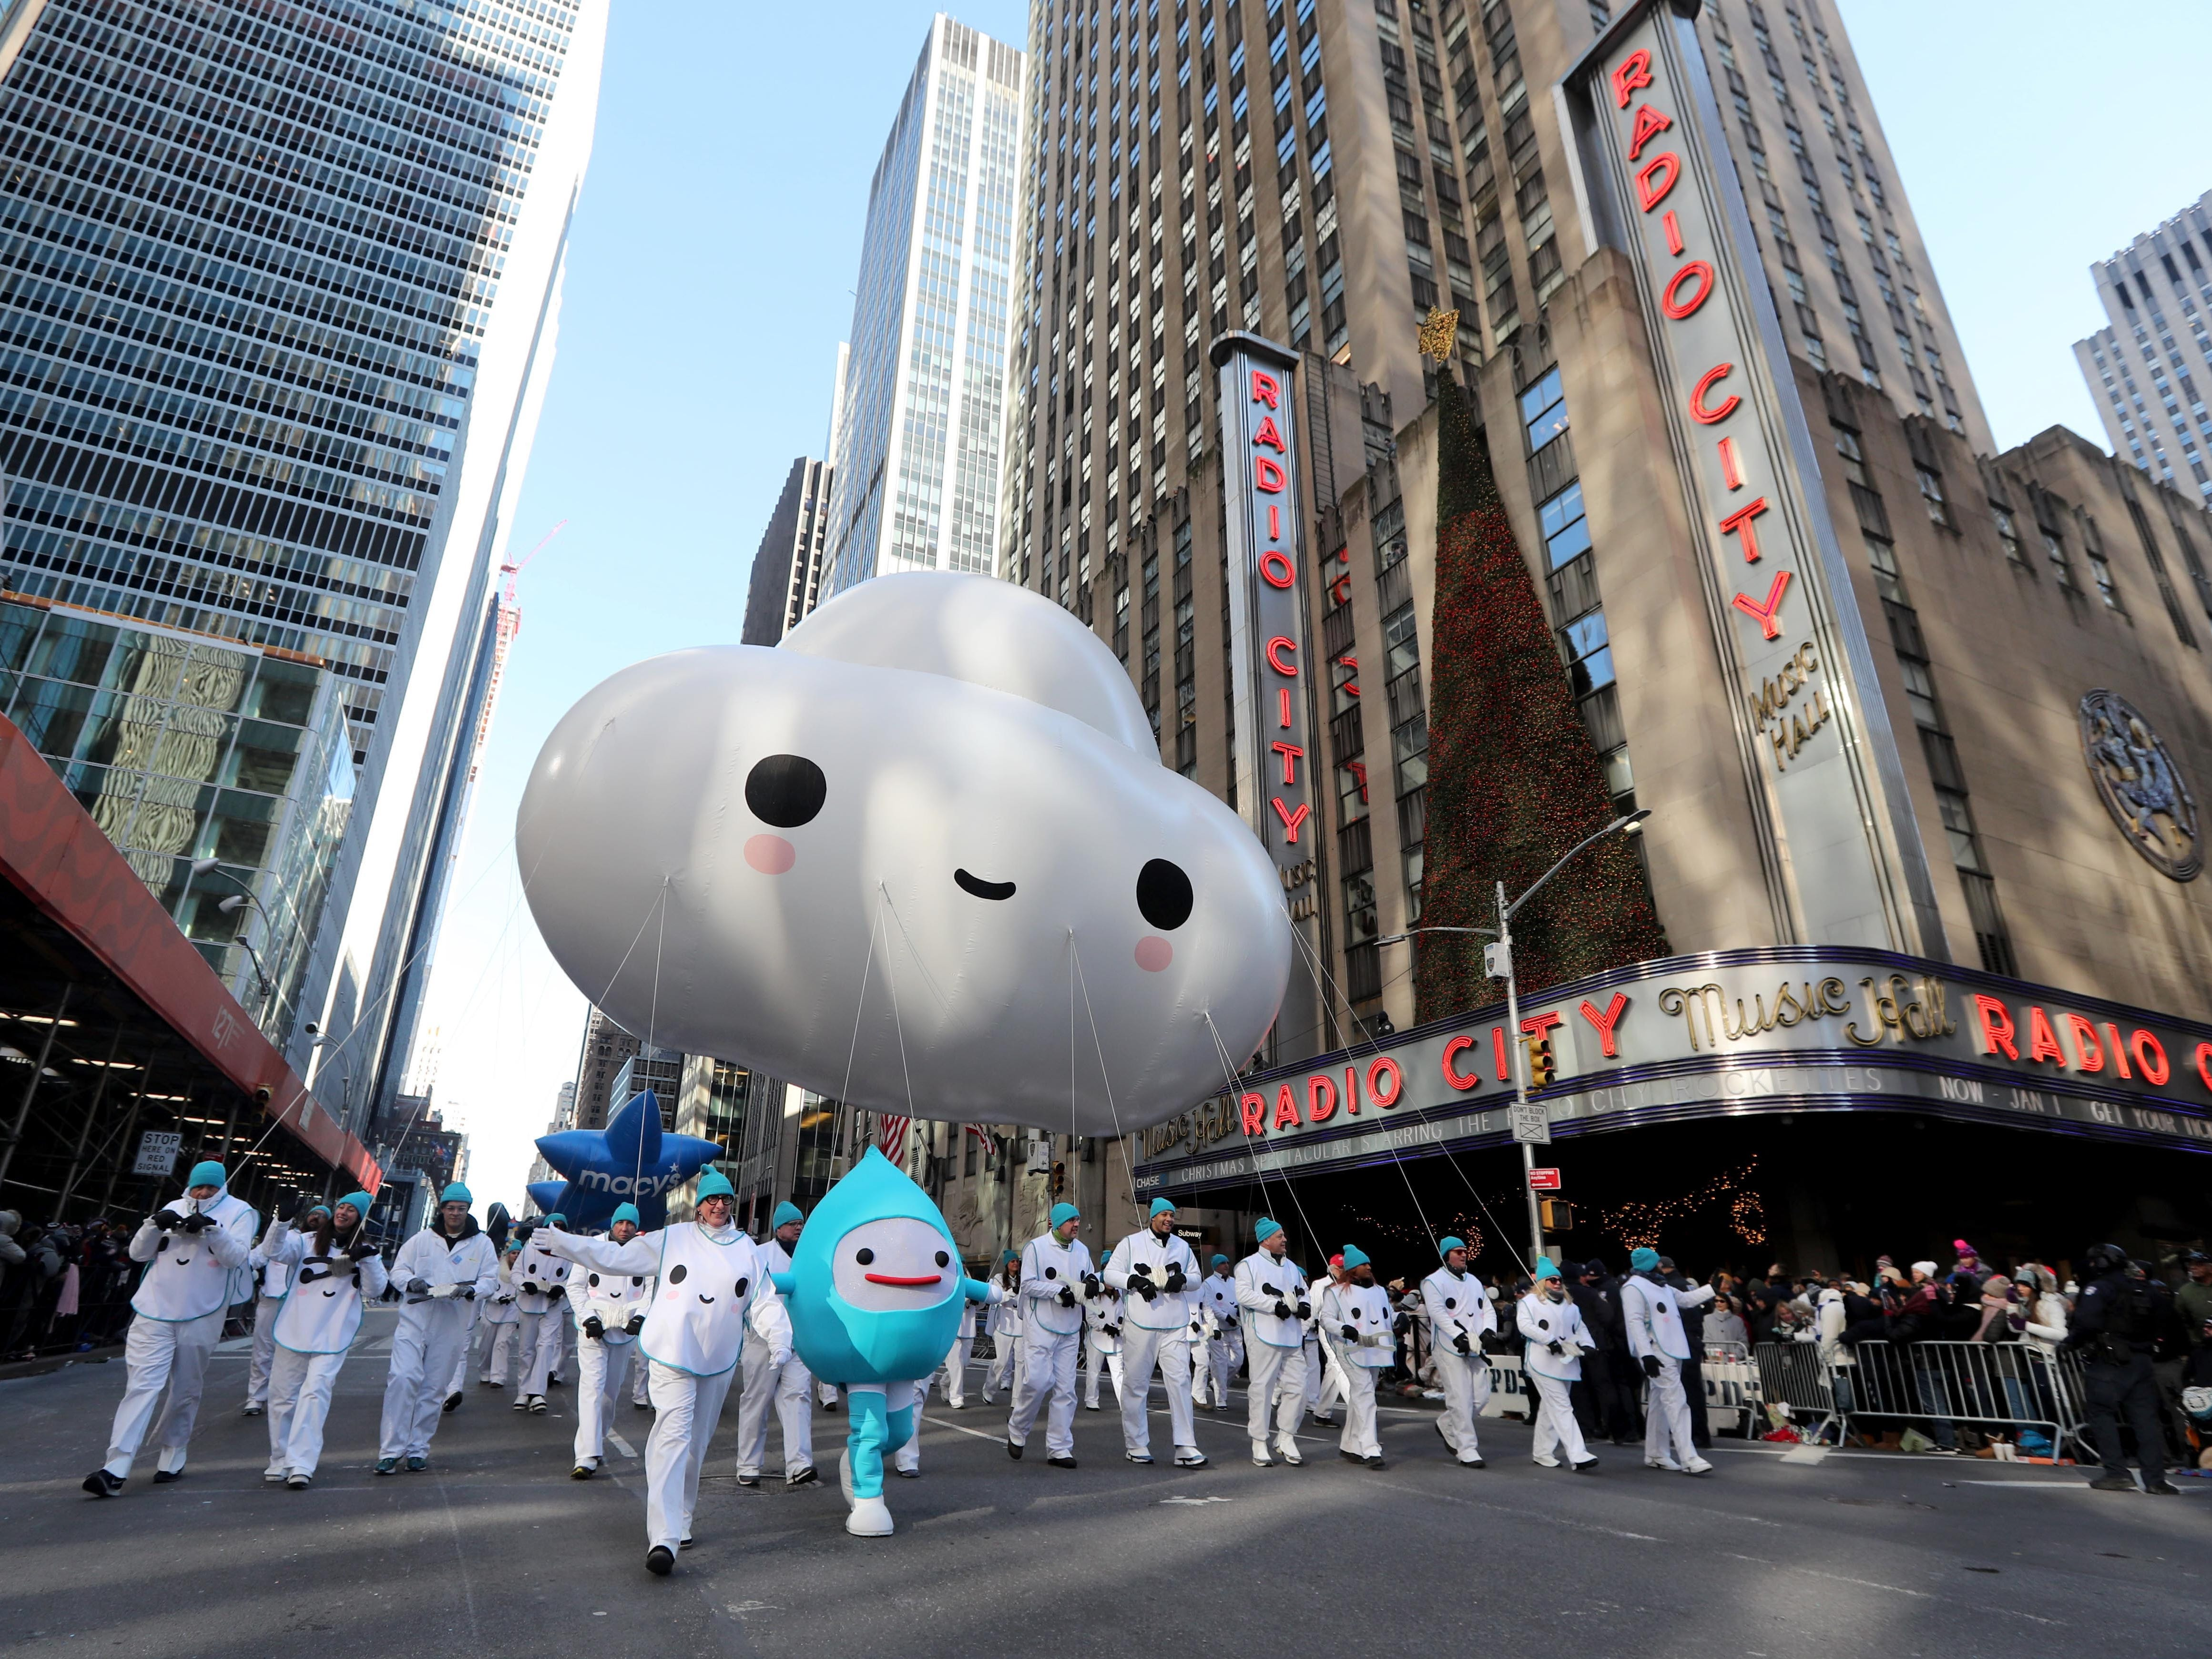 The Little Cloud balloon makes its way past Radio City Music Hall on 6th Ave. in New York during the annual Macy's Thanksgiving Day Parade, Nov. 22, 2018.